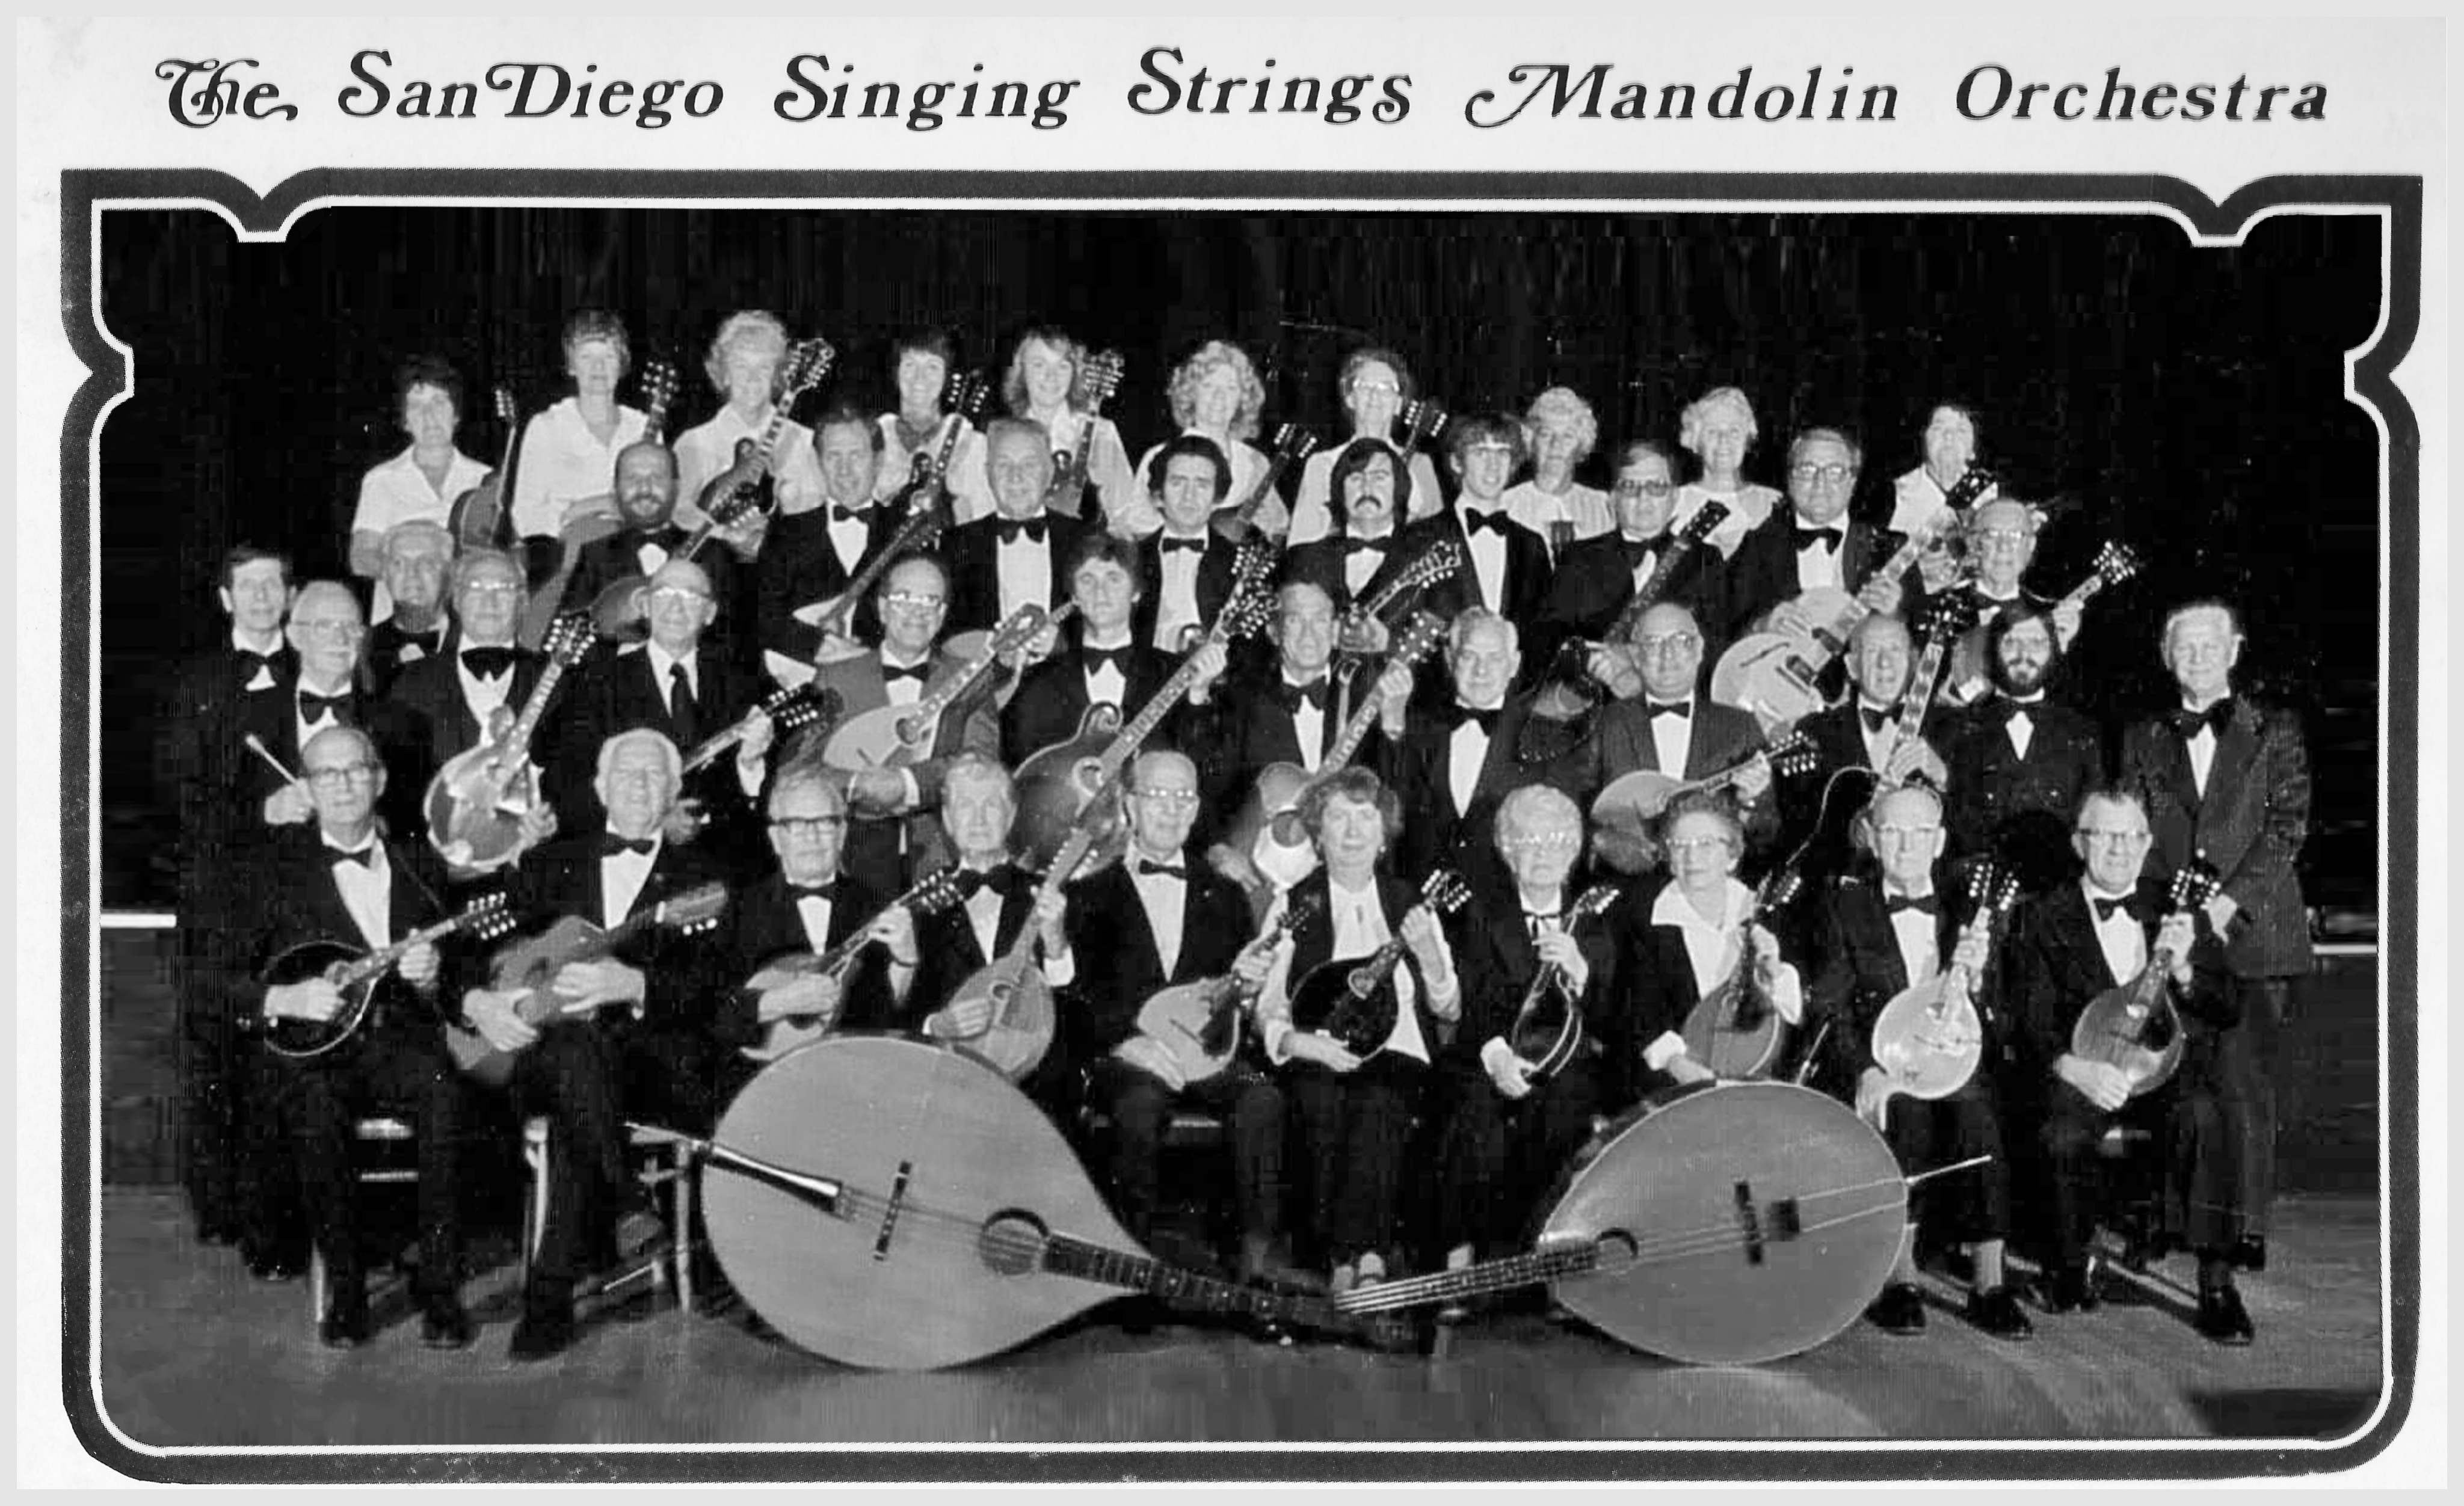 San Diego Singing Strings